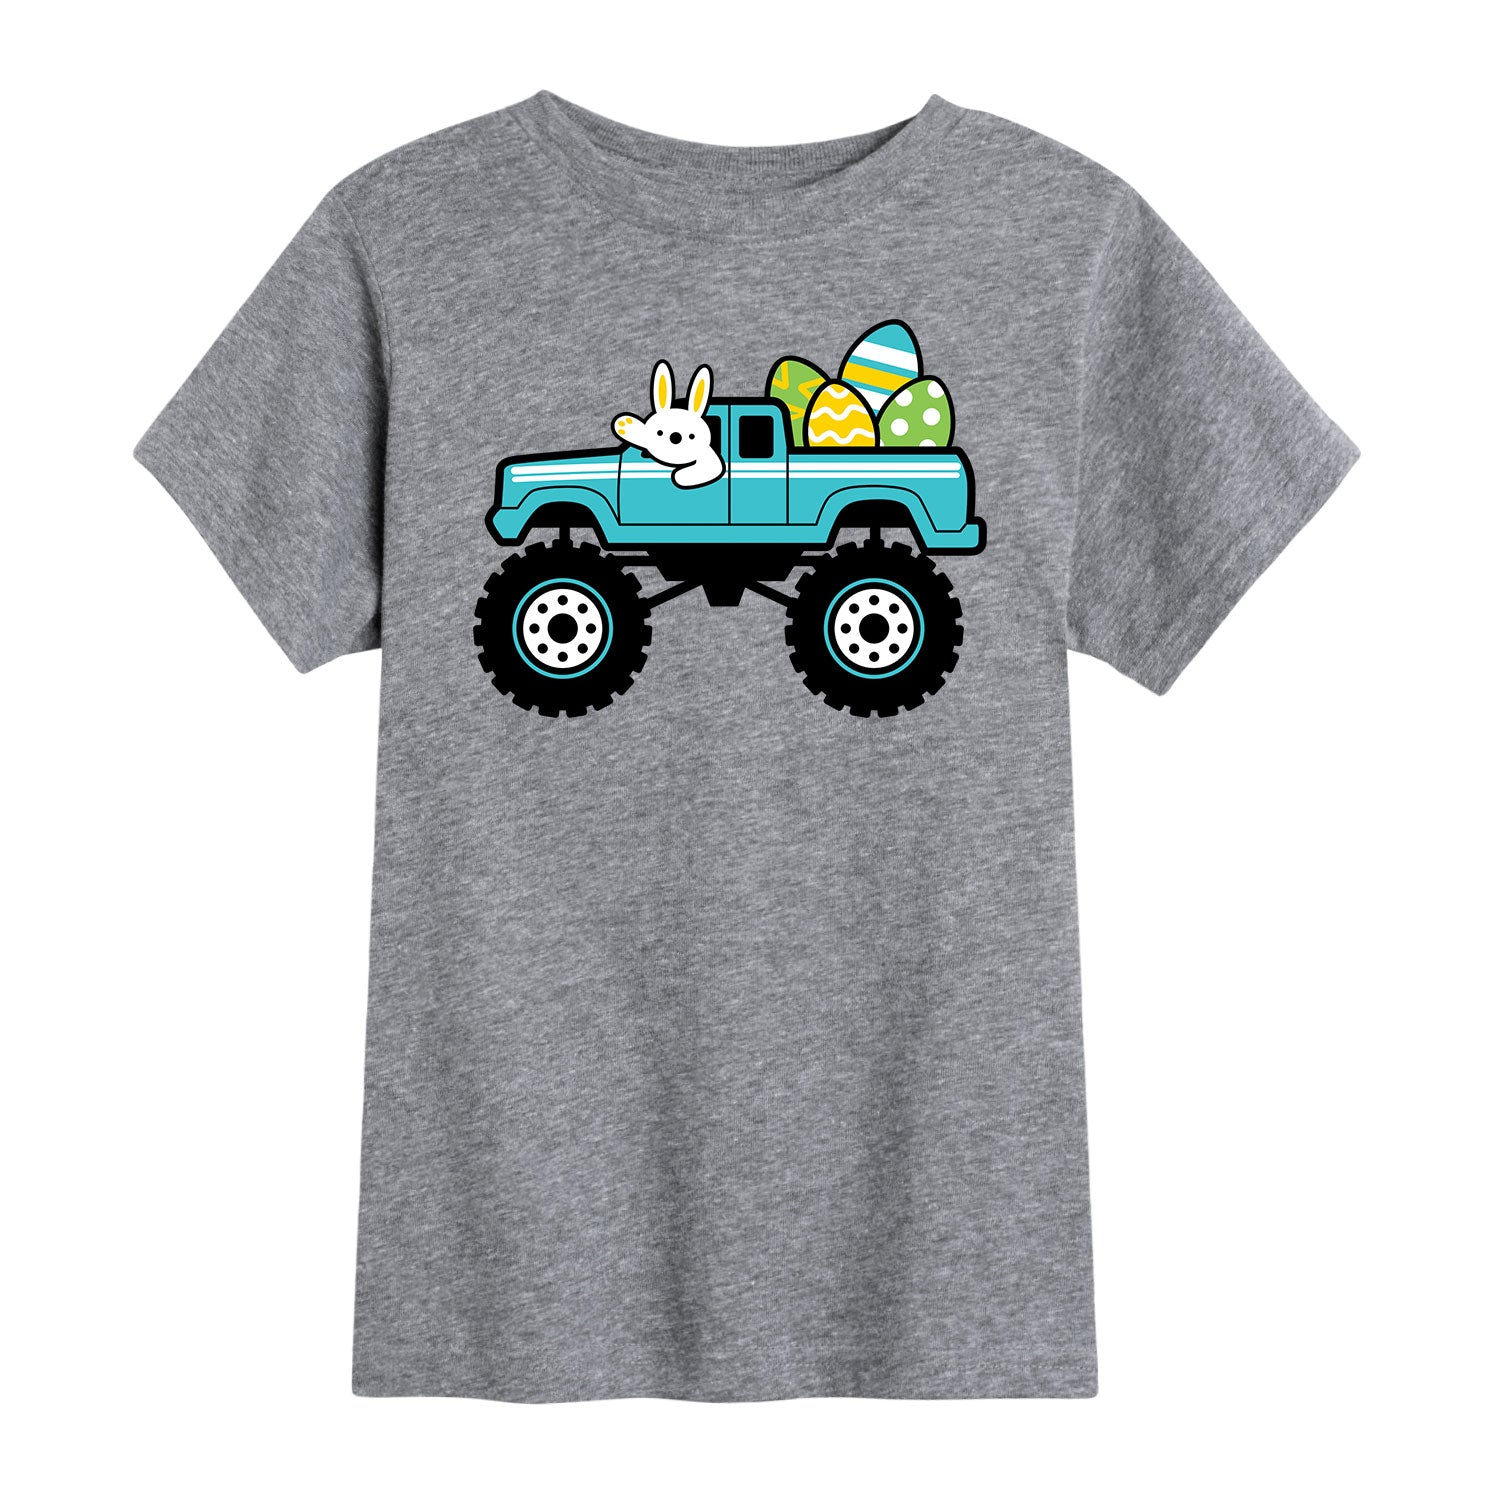 Truck with Easter Eggs - Toddler Short Sleeve T-Shirt